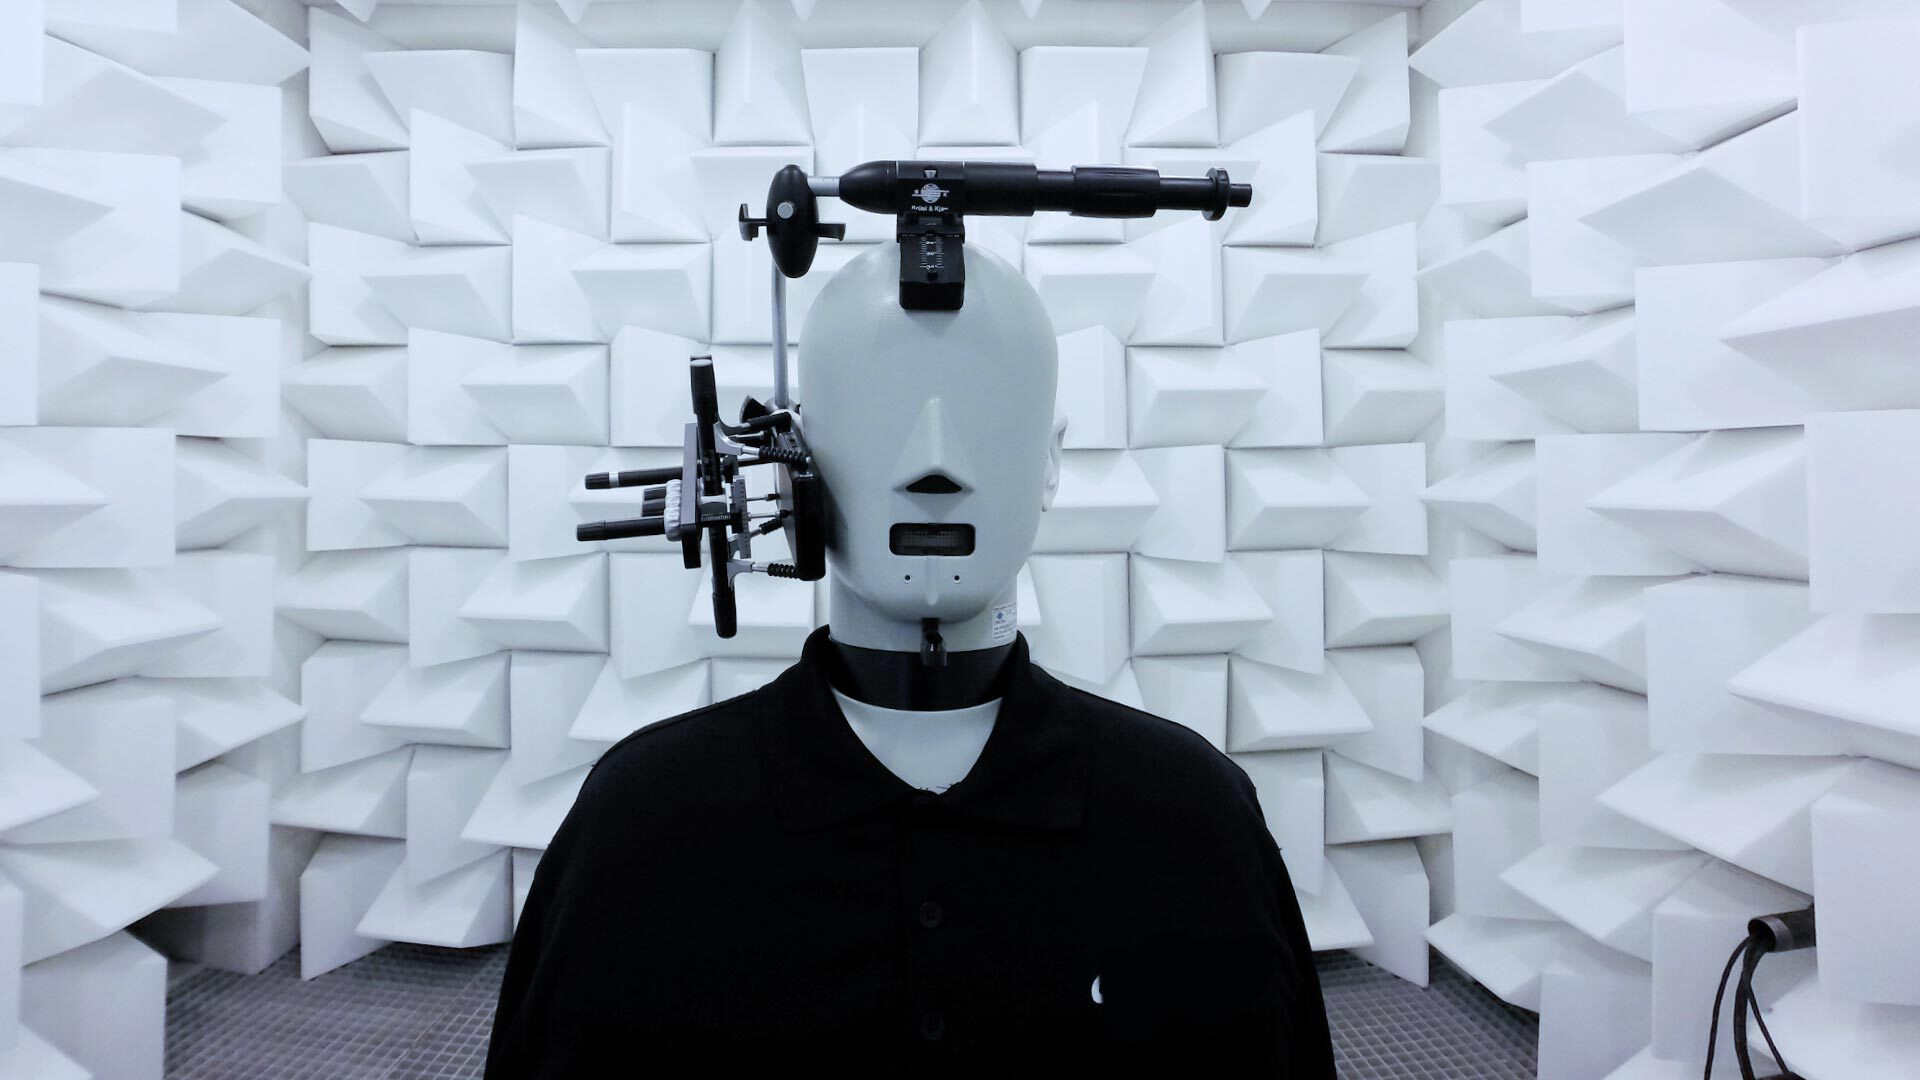 Head and torso simulator (short: HATS), which is used to conduct audio tests